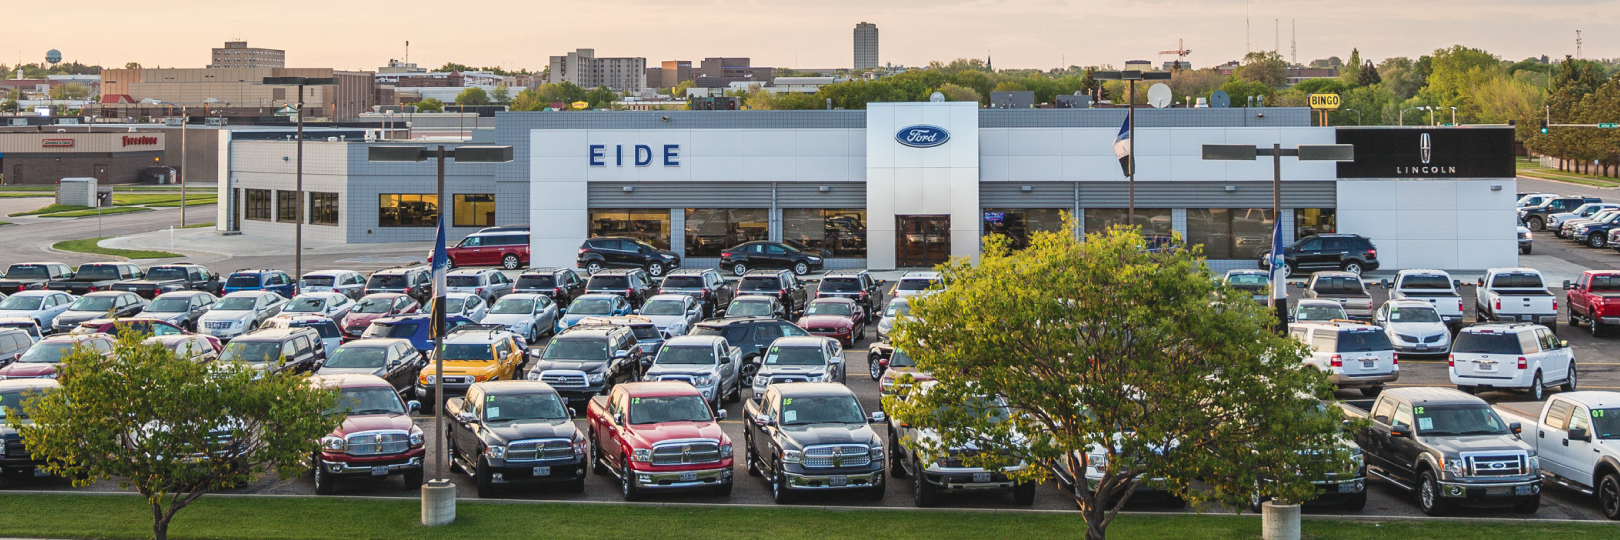 Employee of the Month at Eide Ford